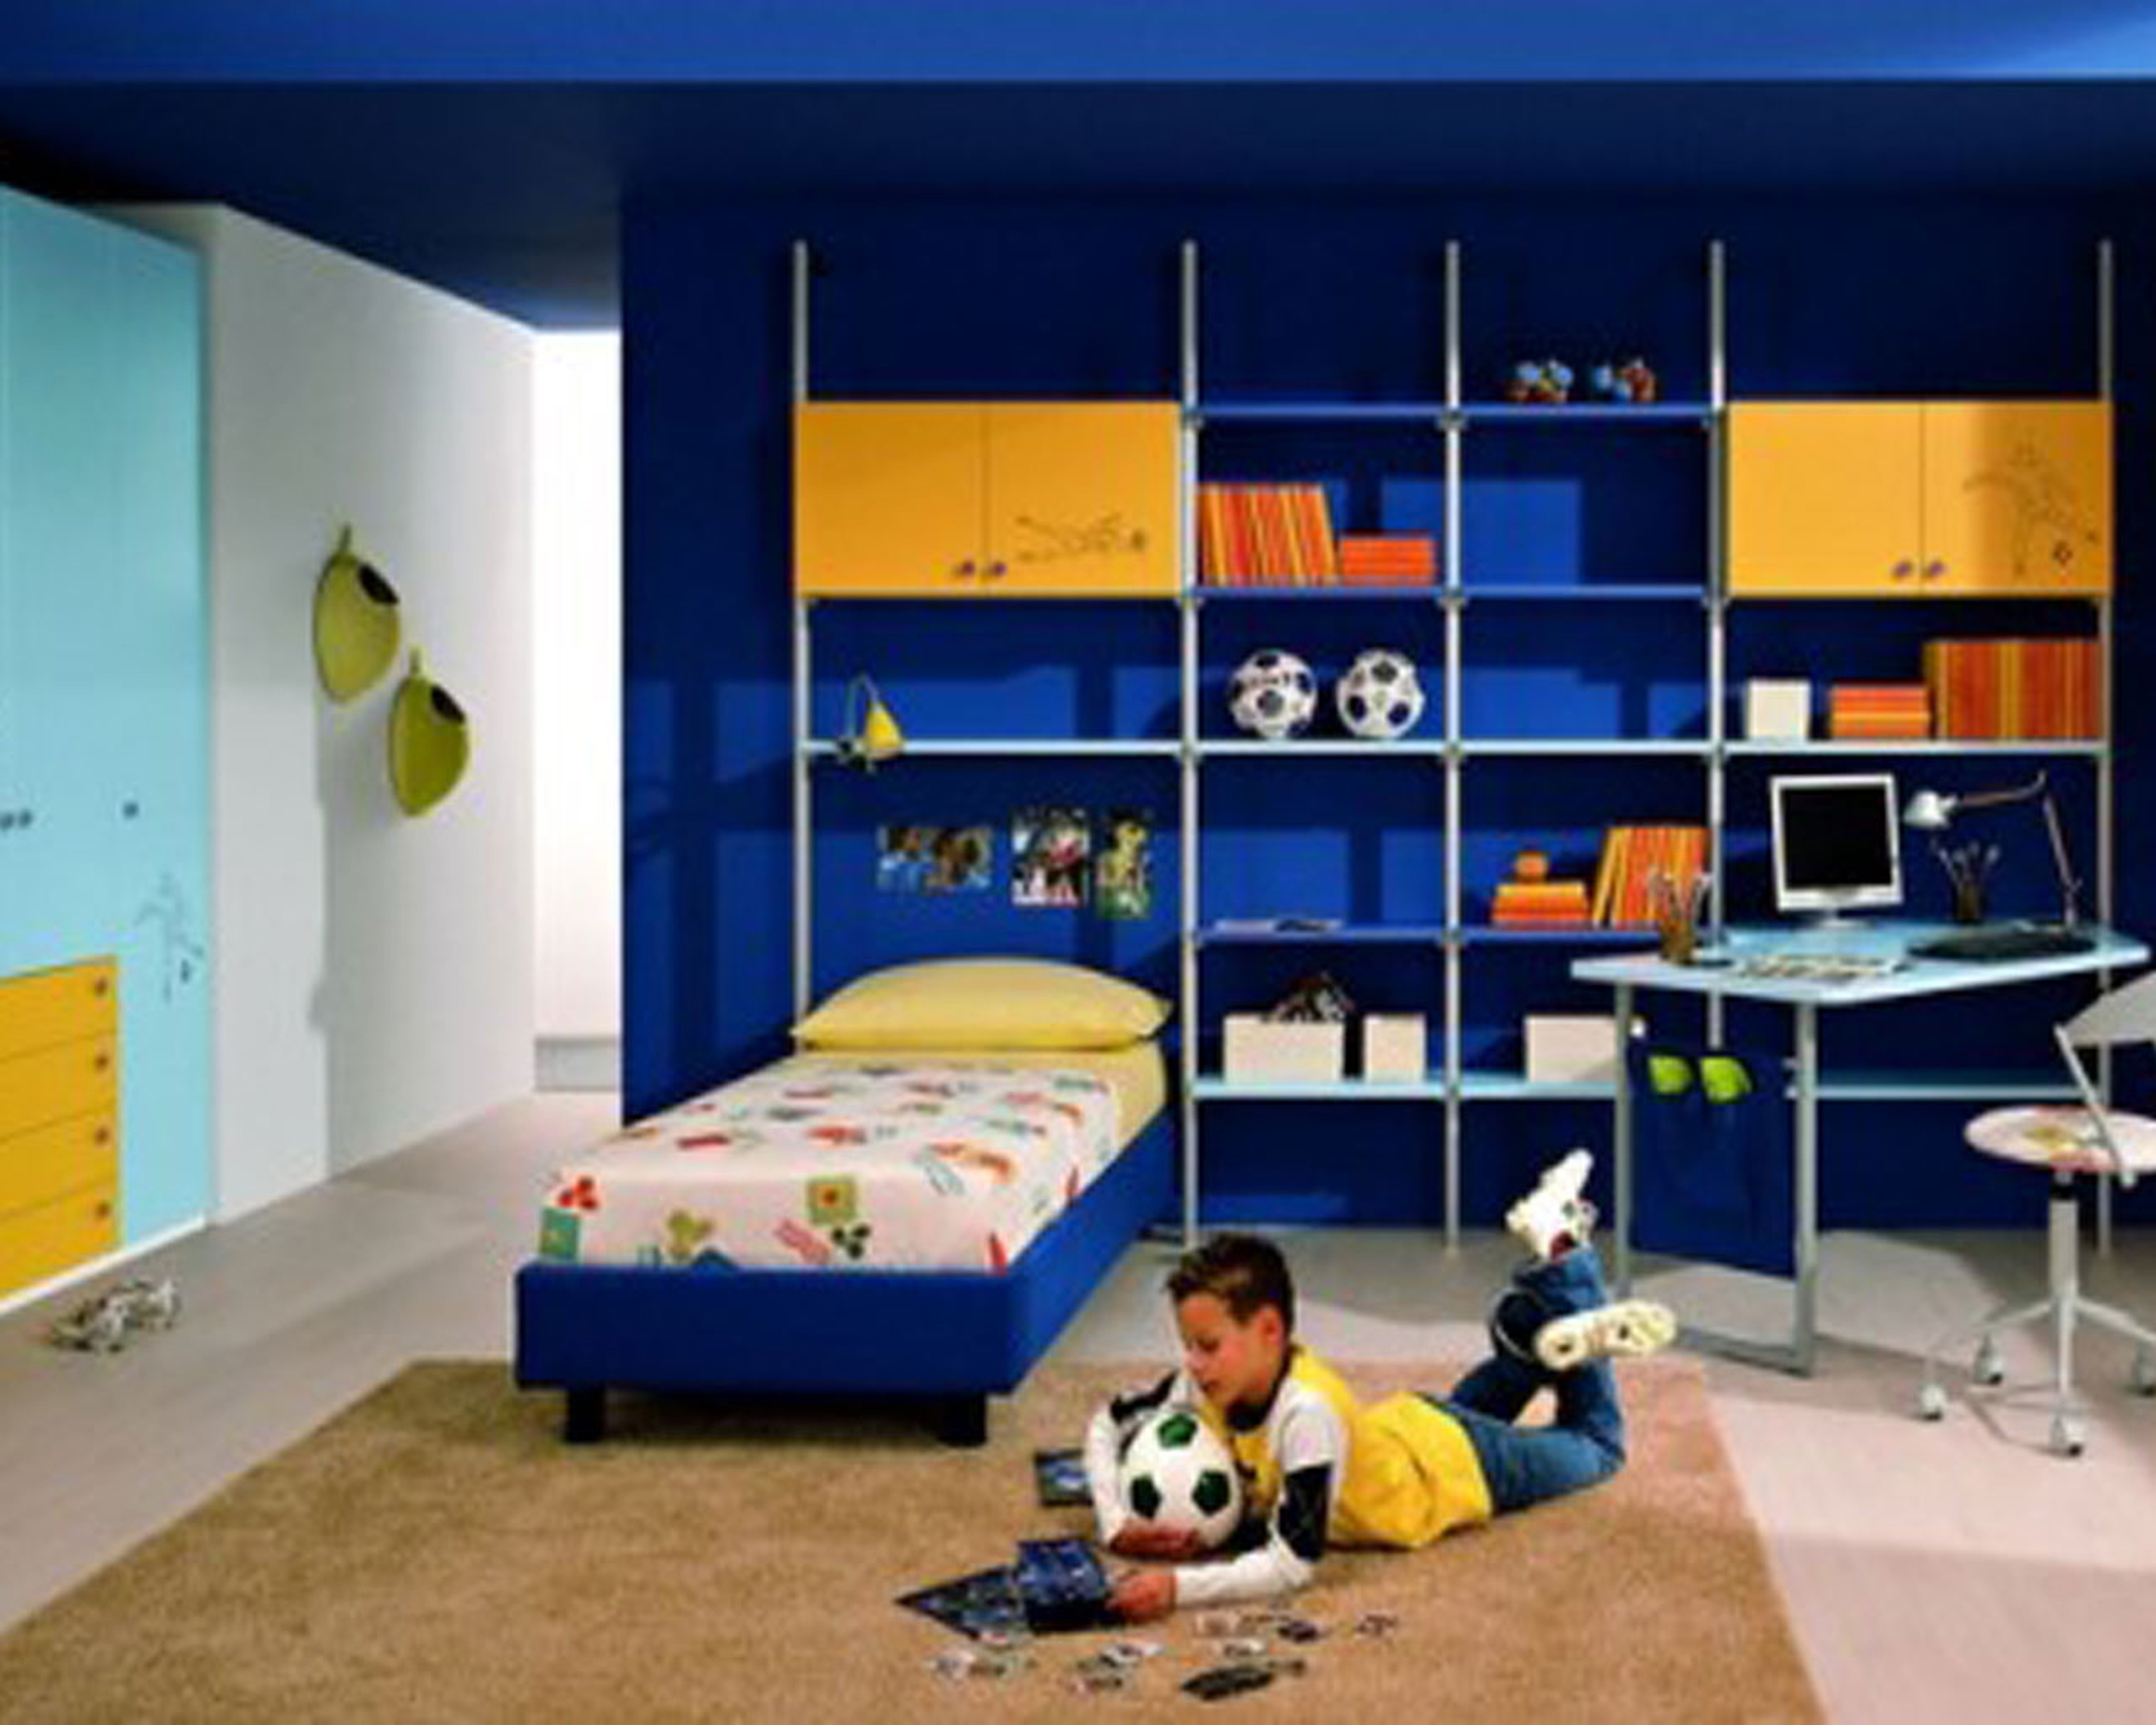 Kids Bedroom Comfortable Boys Bedroom Decoration Idea With Light Brown Rug Whitebed Sheet With Yellow Pillows And White Table With Computer Impressive Boys Bedroom Decoration Ideas (Image 3 of 28)